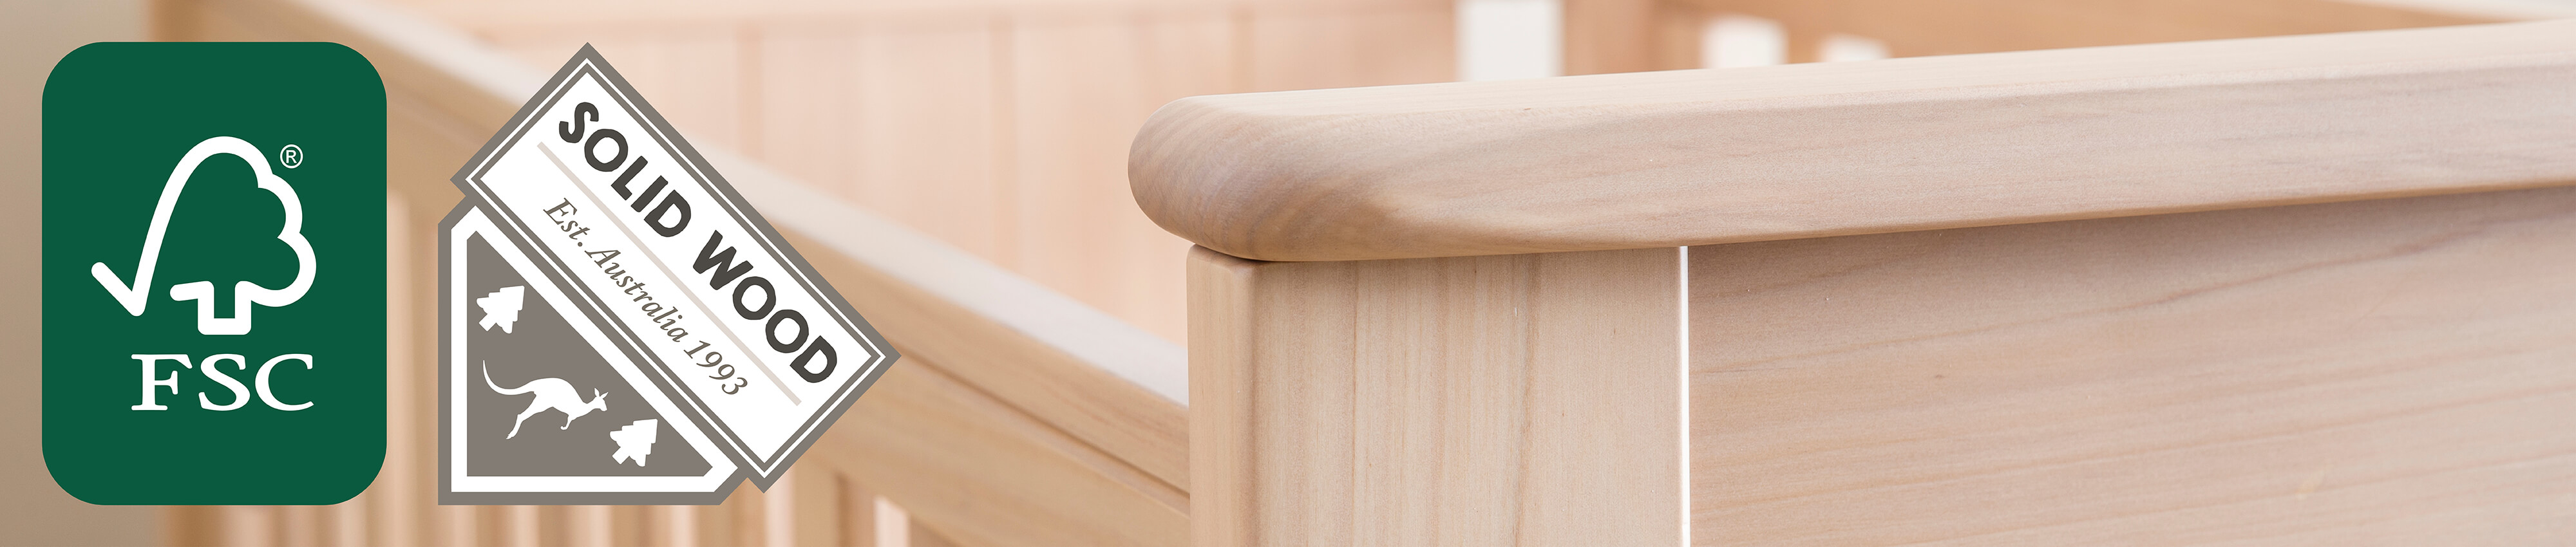 We use sustainable solid wood